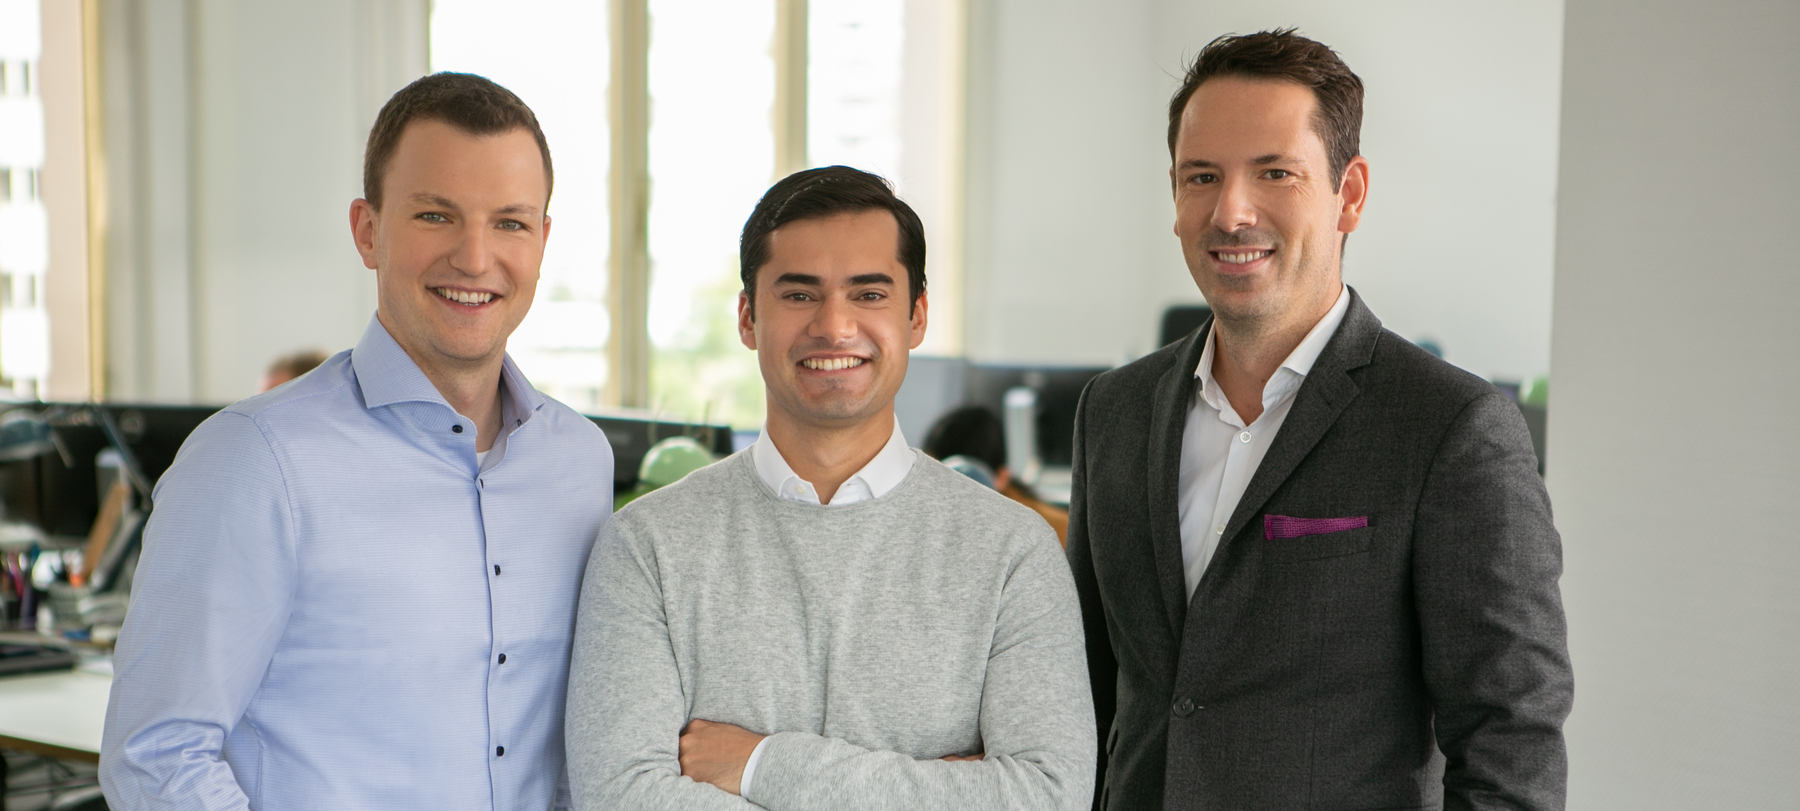 Linus Capital real estate investment platform collects 300 million euros